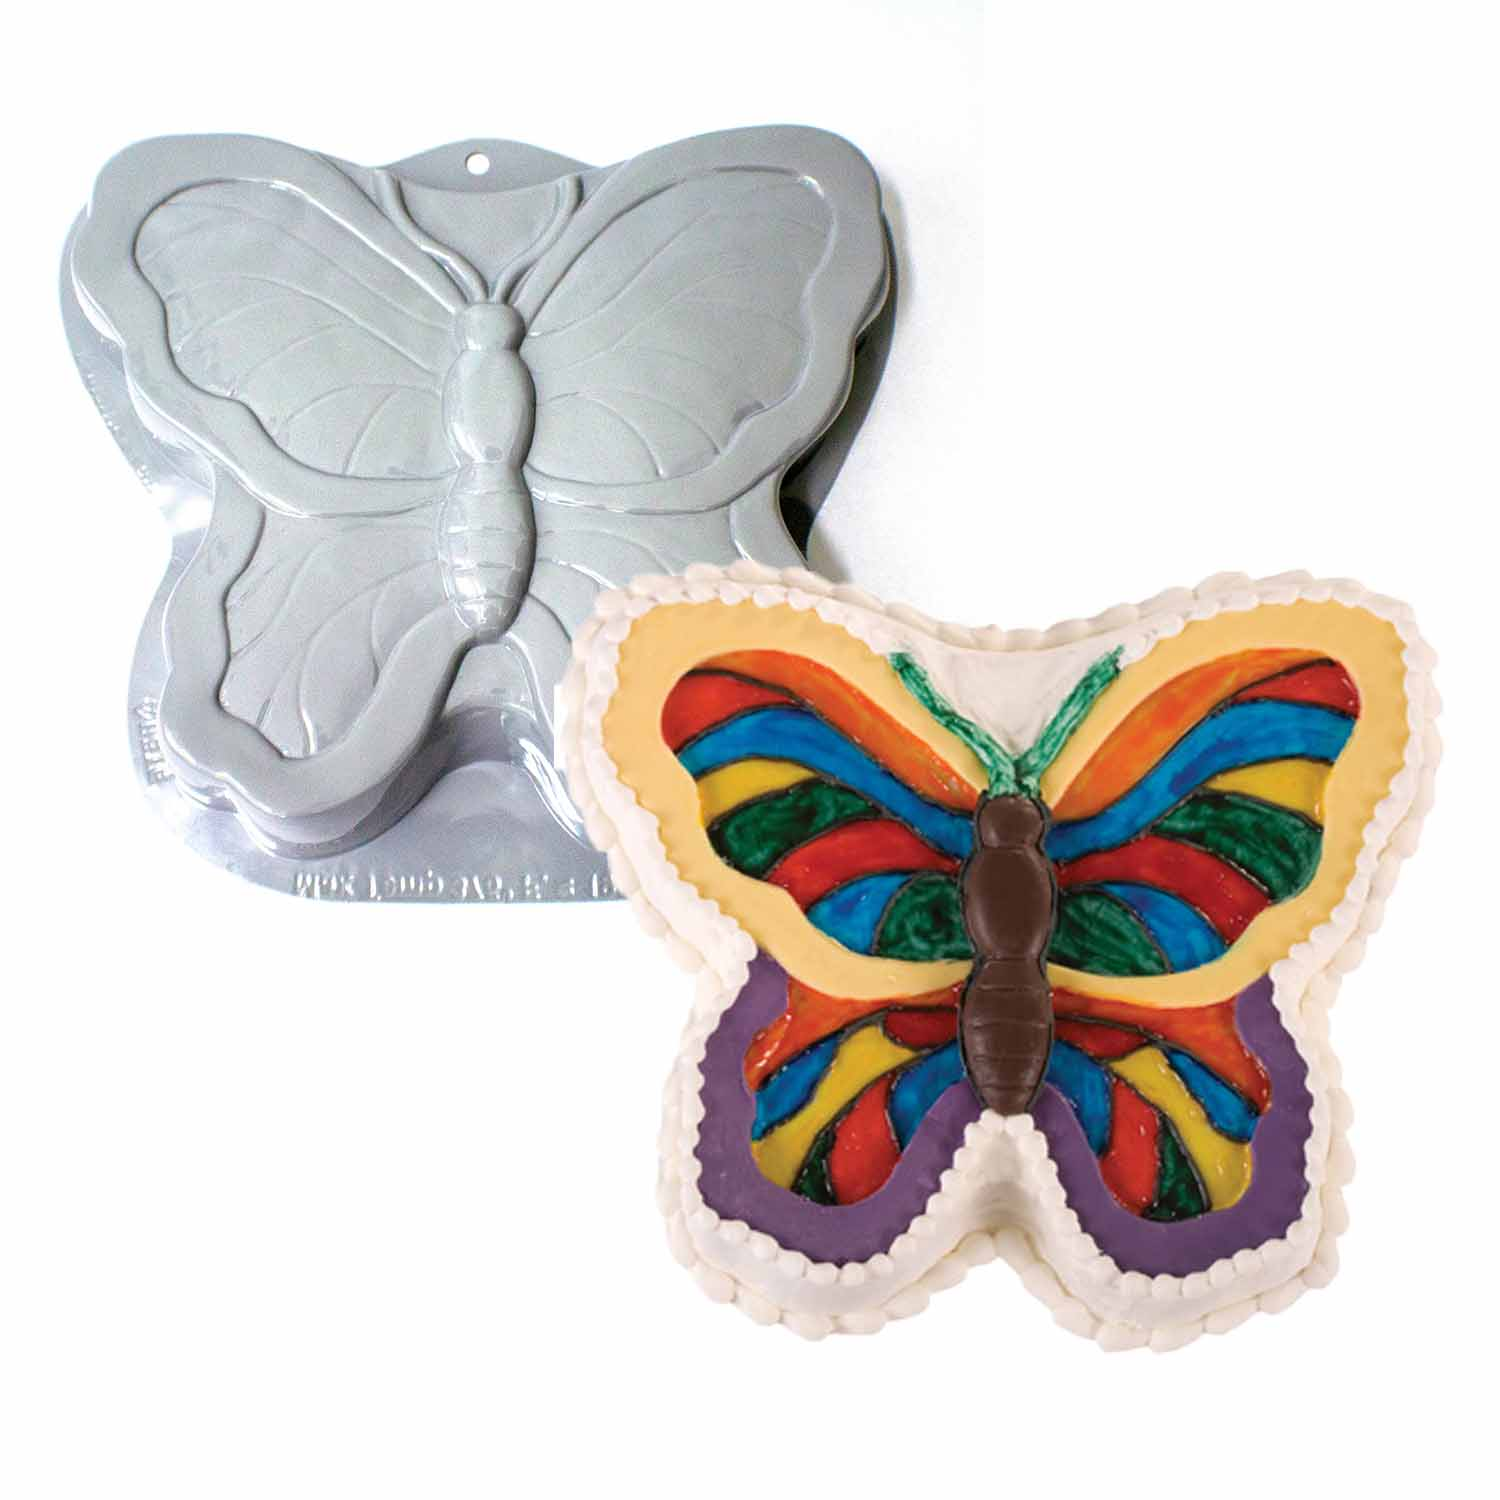 Butterfly Pantastic Plastic Cake Pan 49 8123 Country